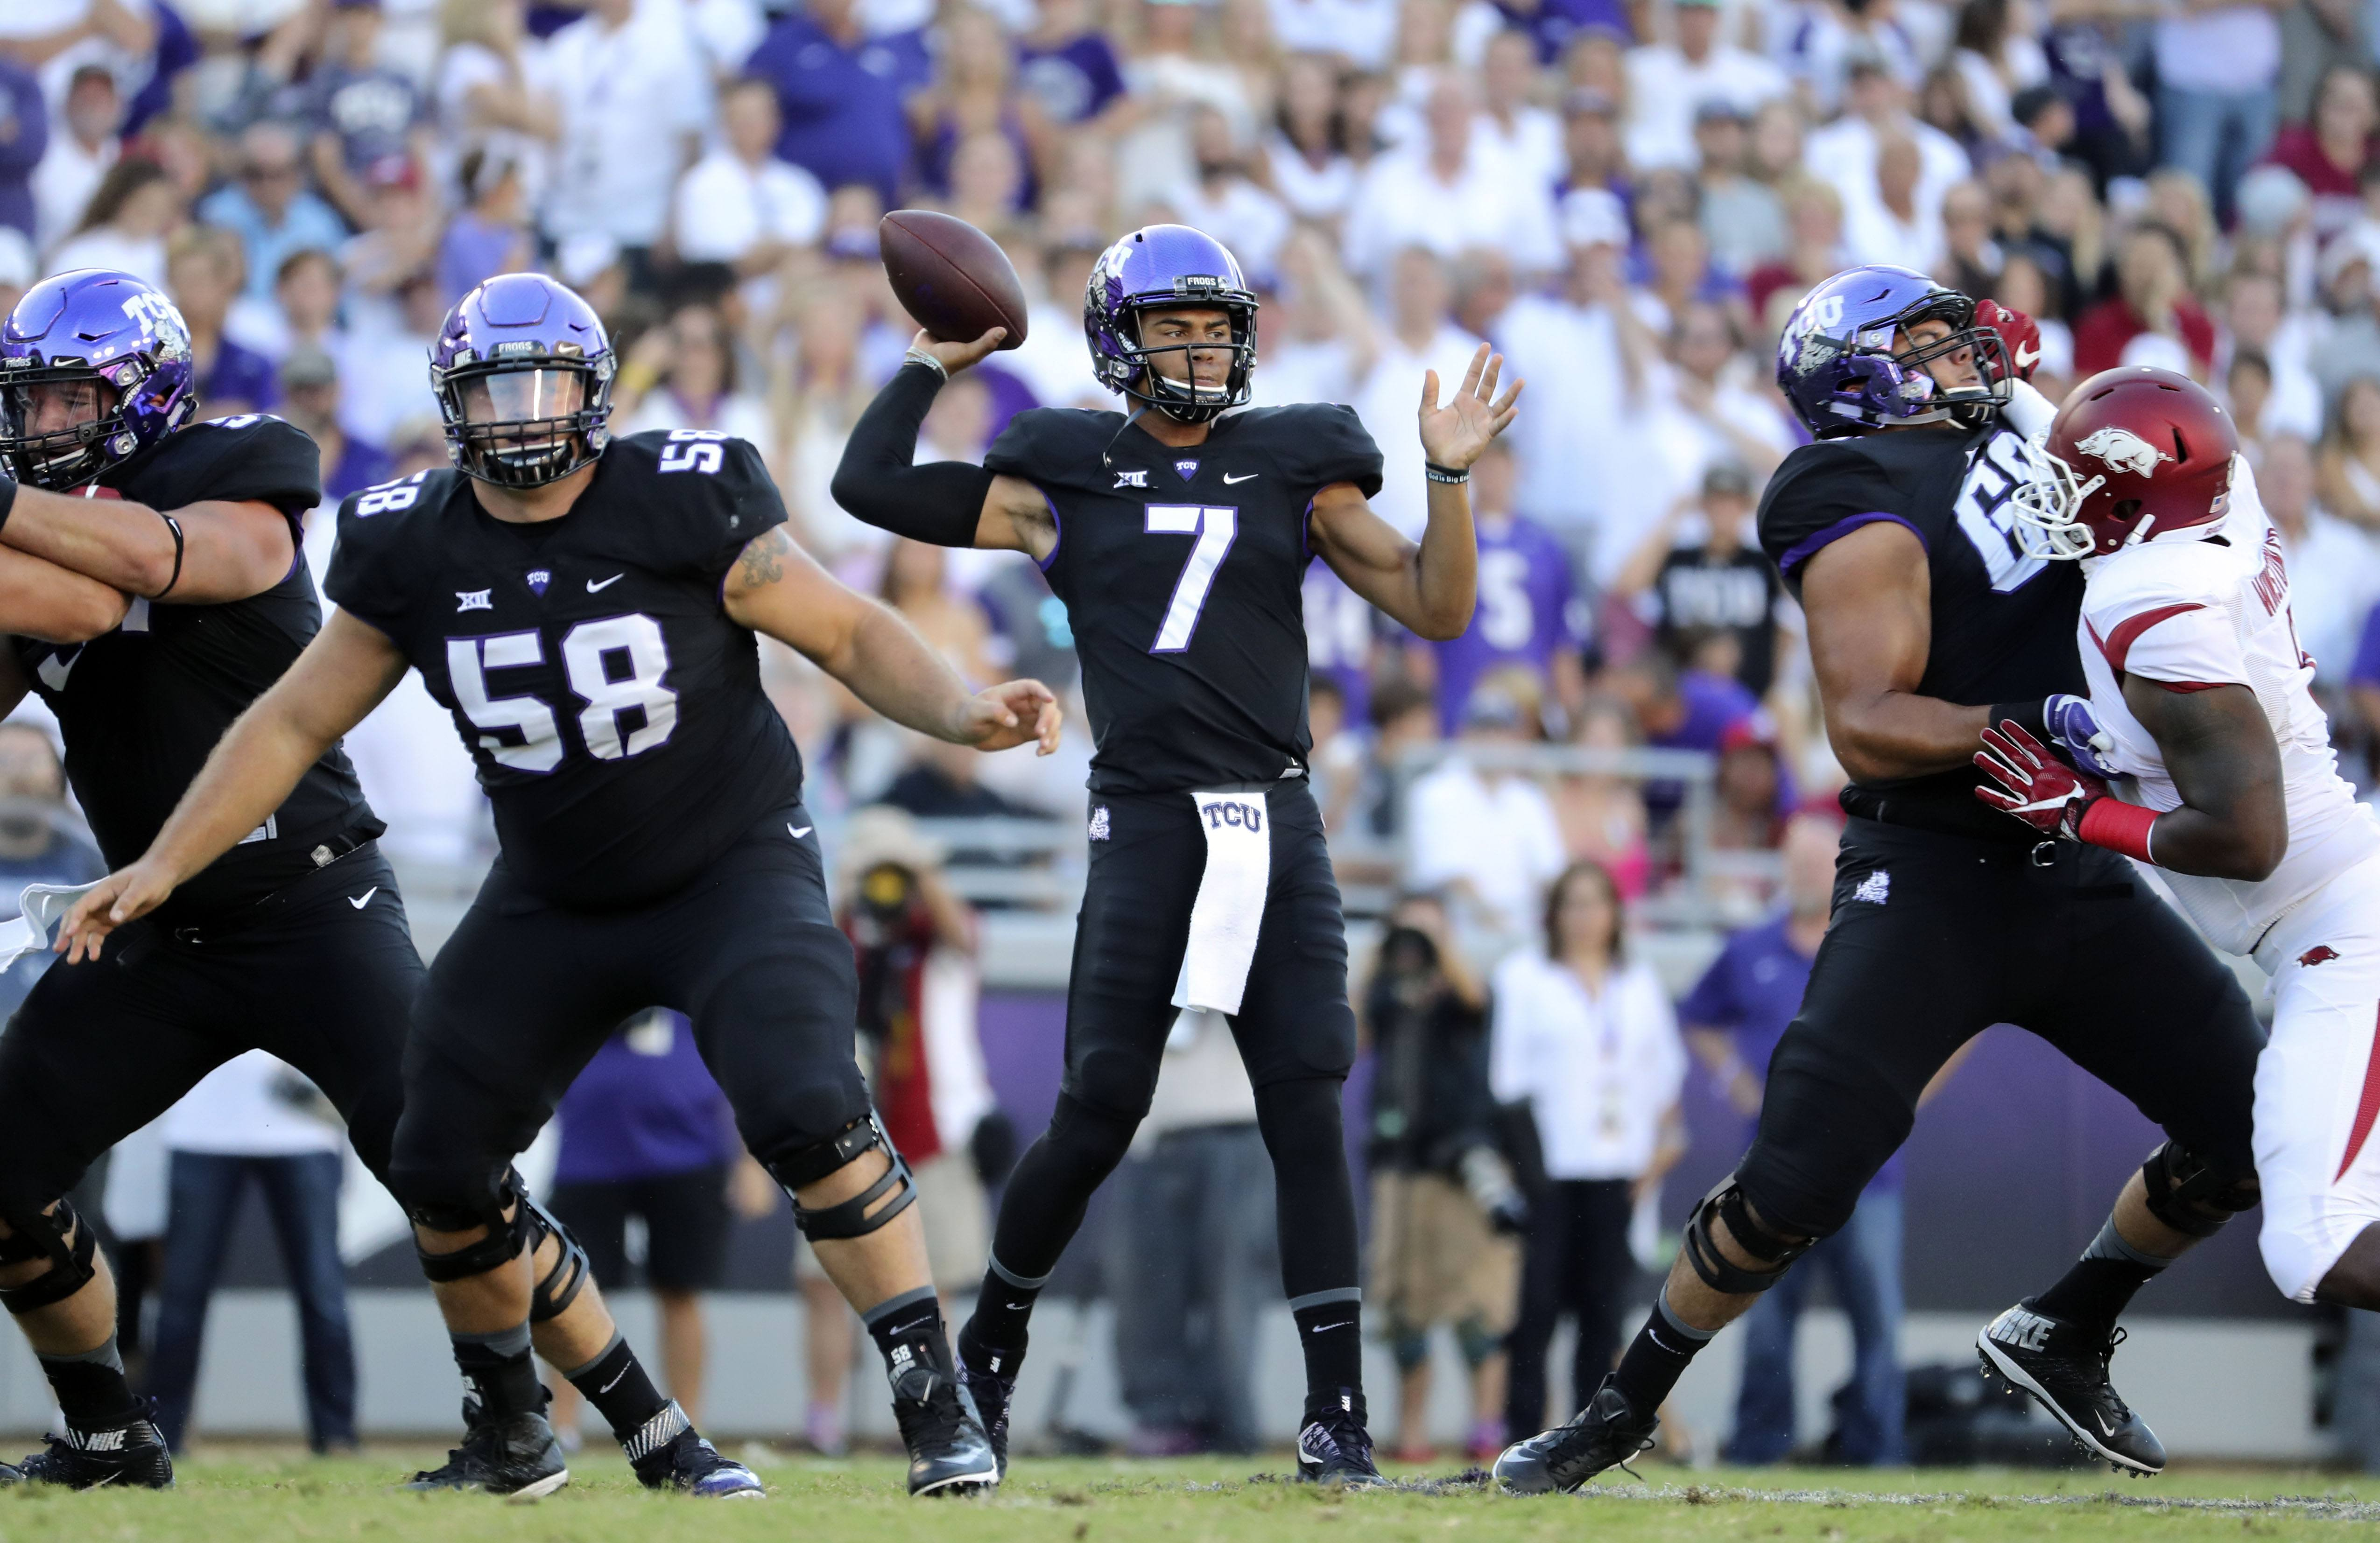 Sep 10, 2016; Fort Worth, TX, USA; TCU Horned Frogs quarterback Kenny Hill (7) throws during the first quarter against the Arkansas Razorbacks at Amon G. Carter Stadium. Mandatory Credit: Kevin Jairaj-USA TODAY Sports